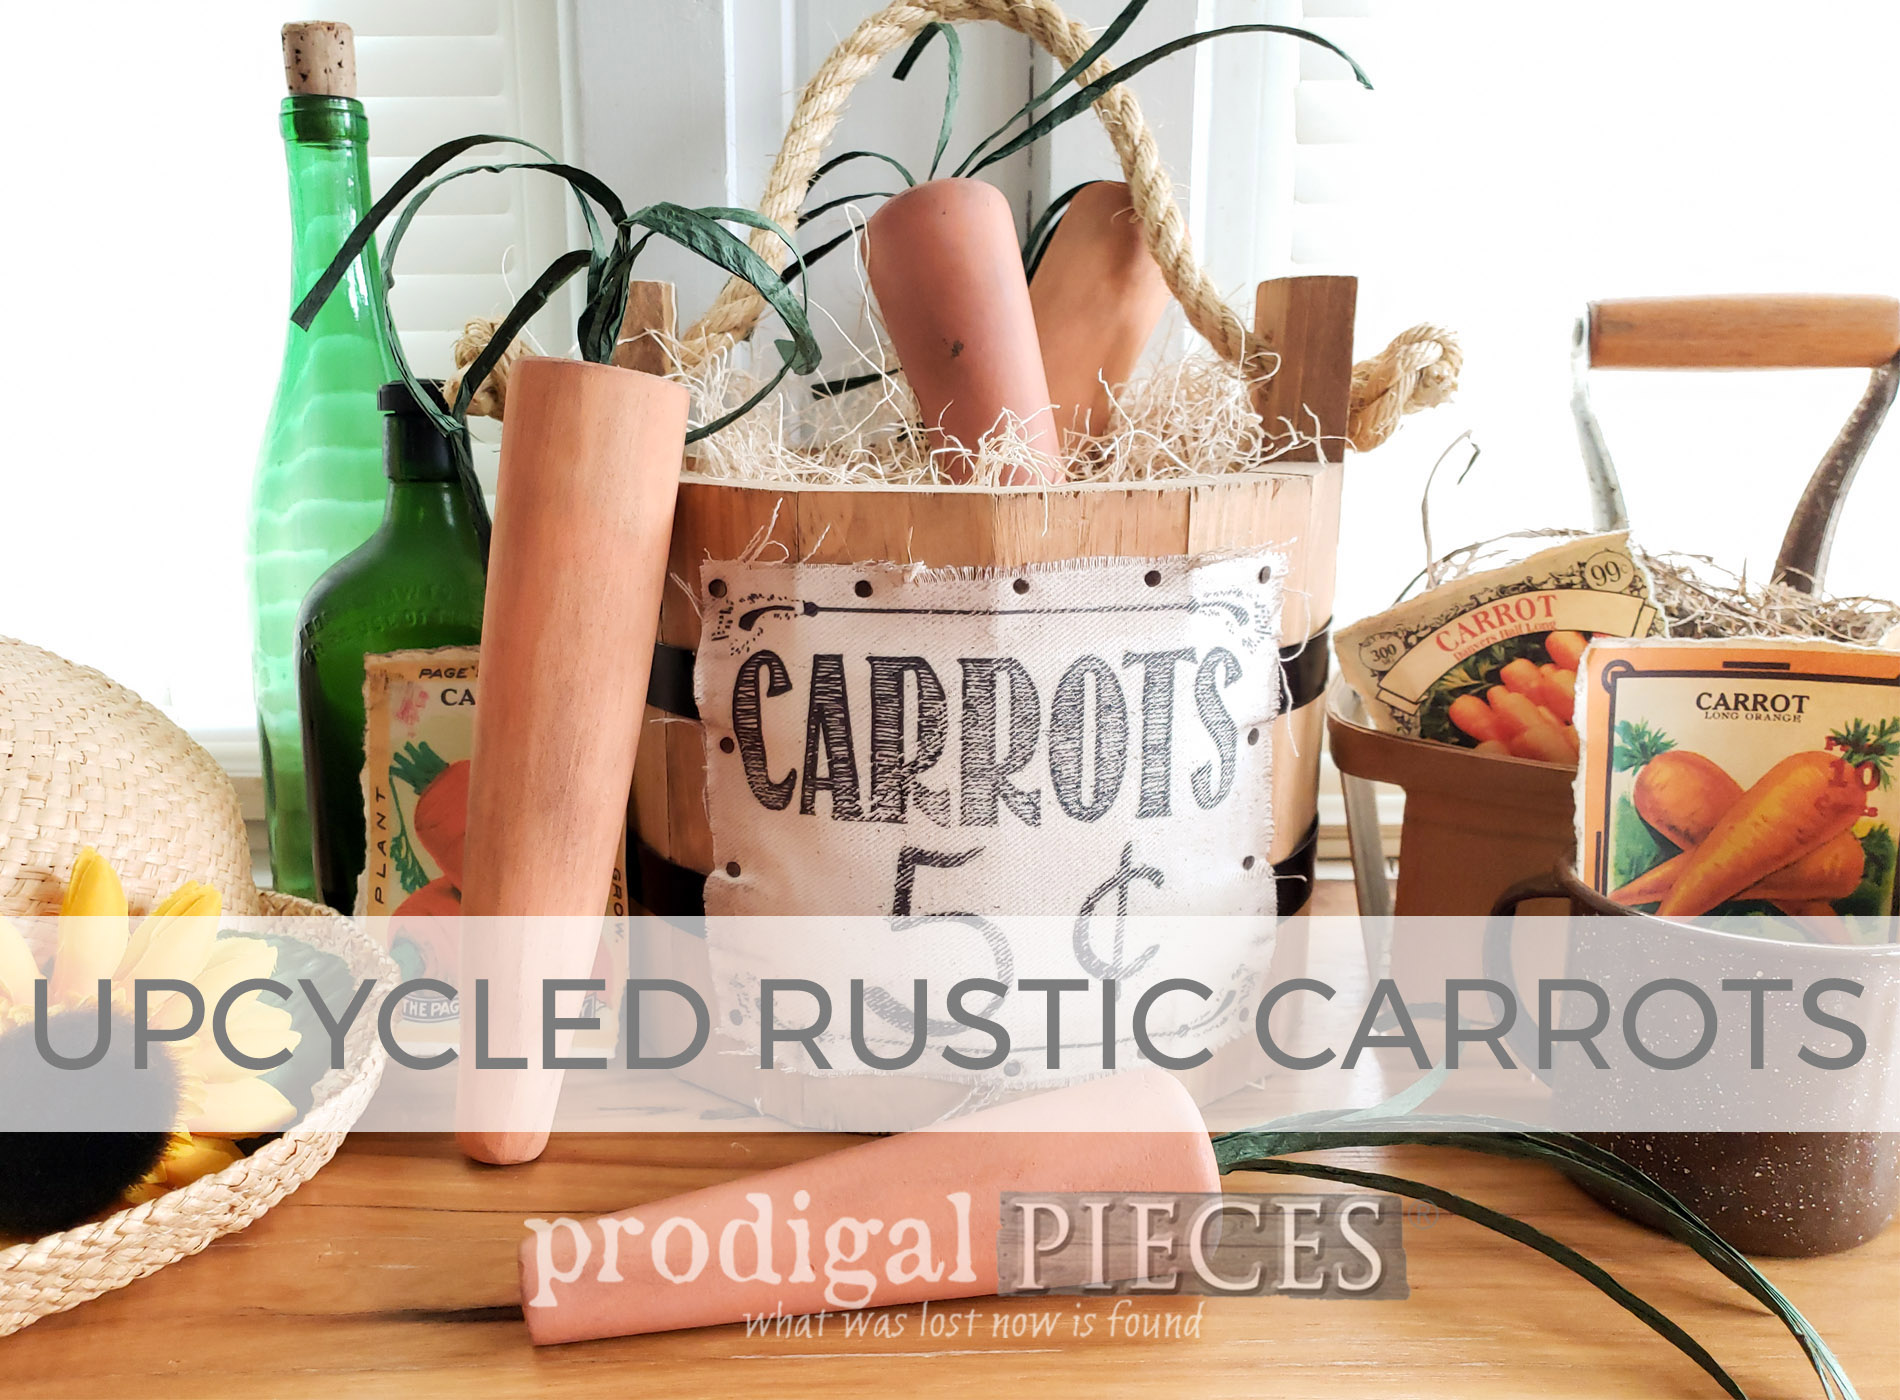 Upcycled Rustic Carrots by Larissa of Prodigal Pieces | prodigalpieces.com